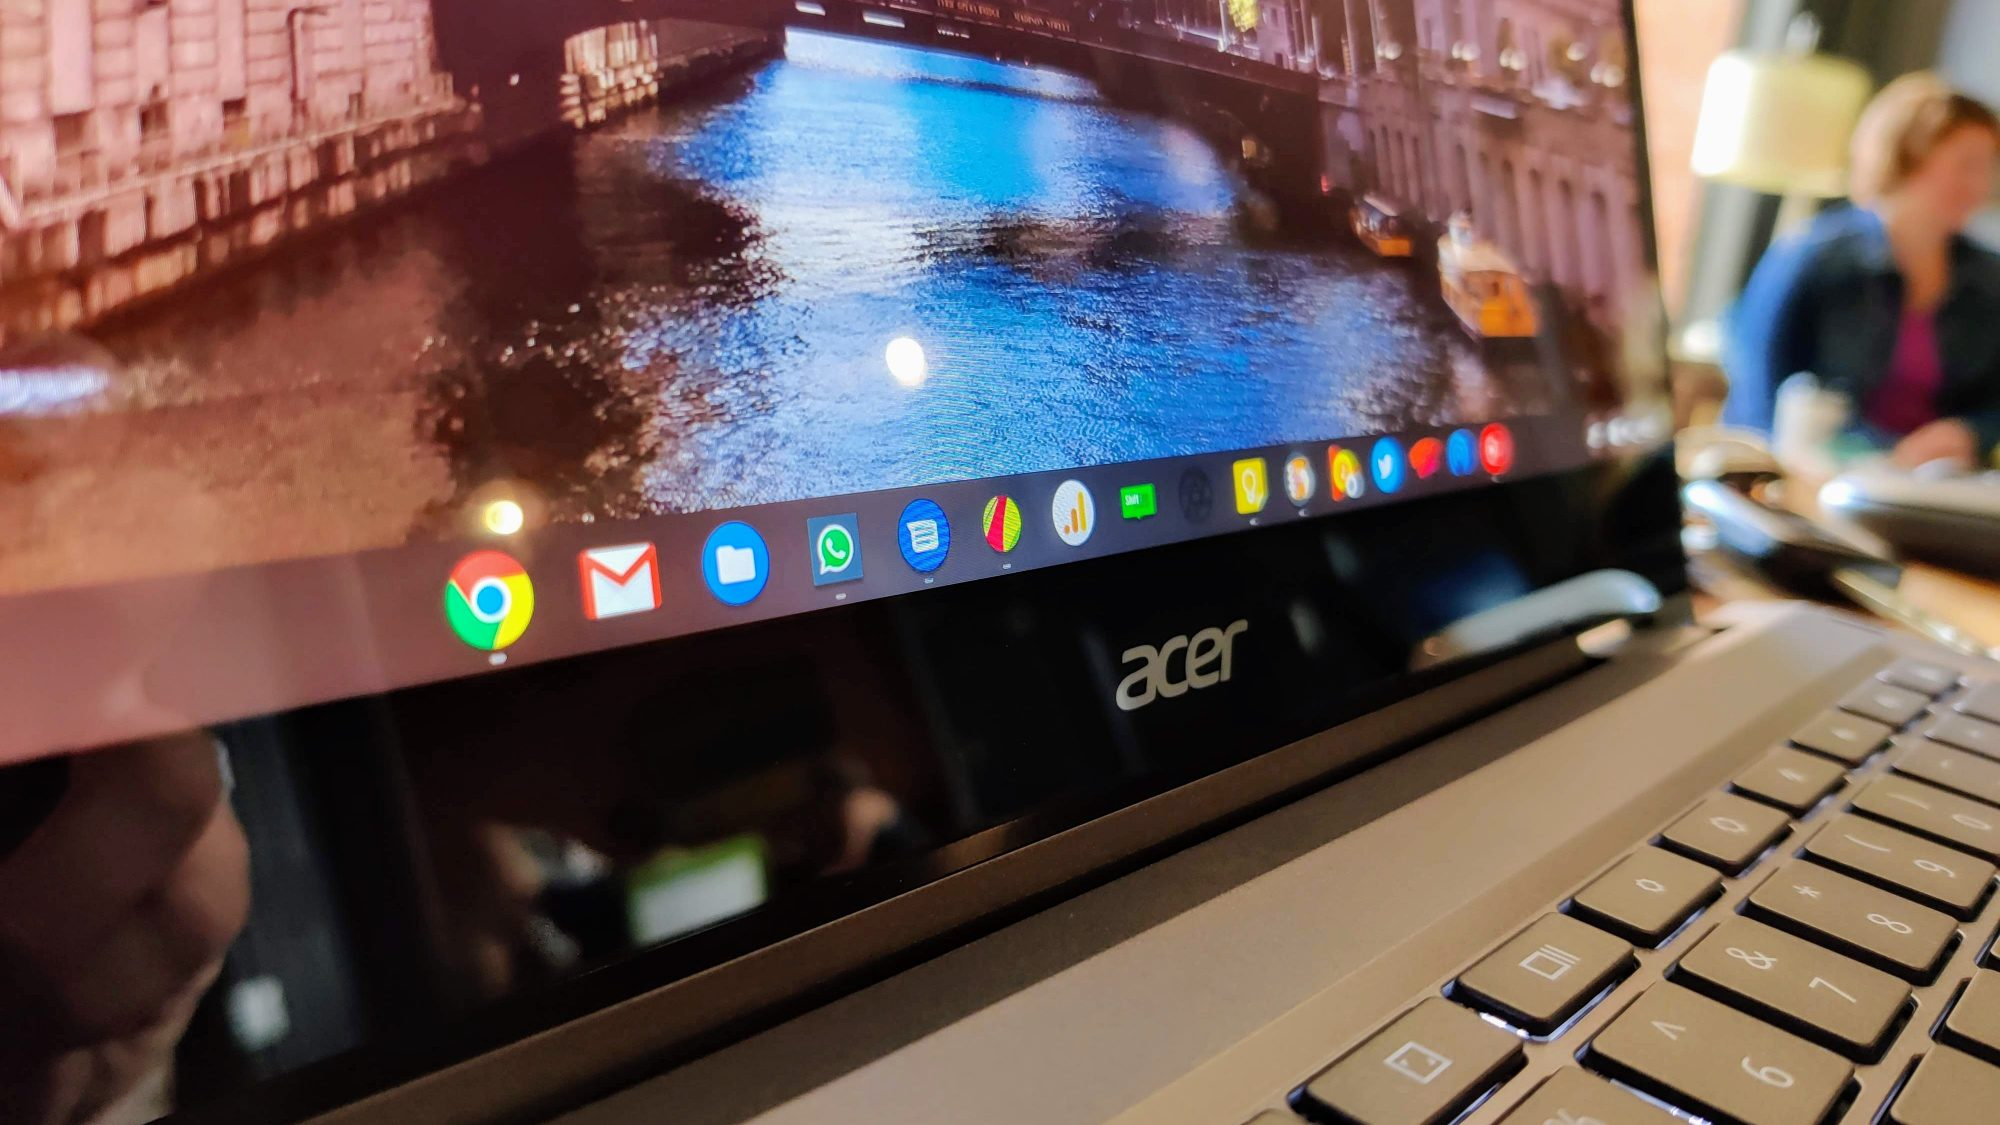 Chrome OS 83 has fixed a long-standing annoyance with PWAs on Chromebooks